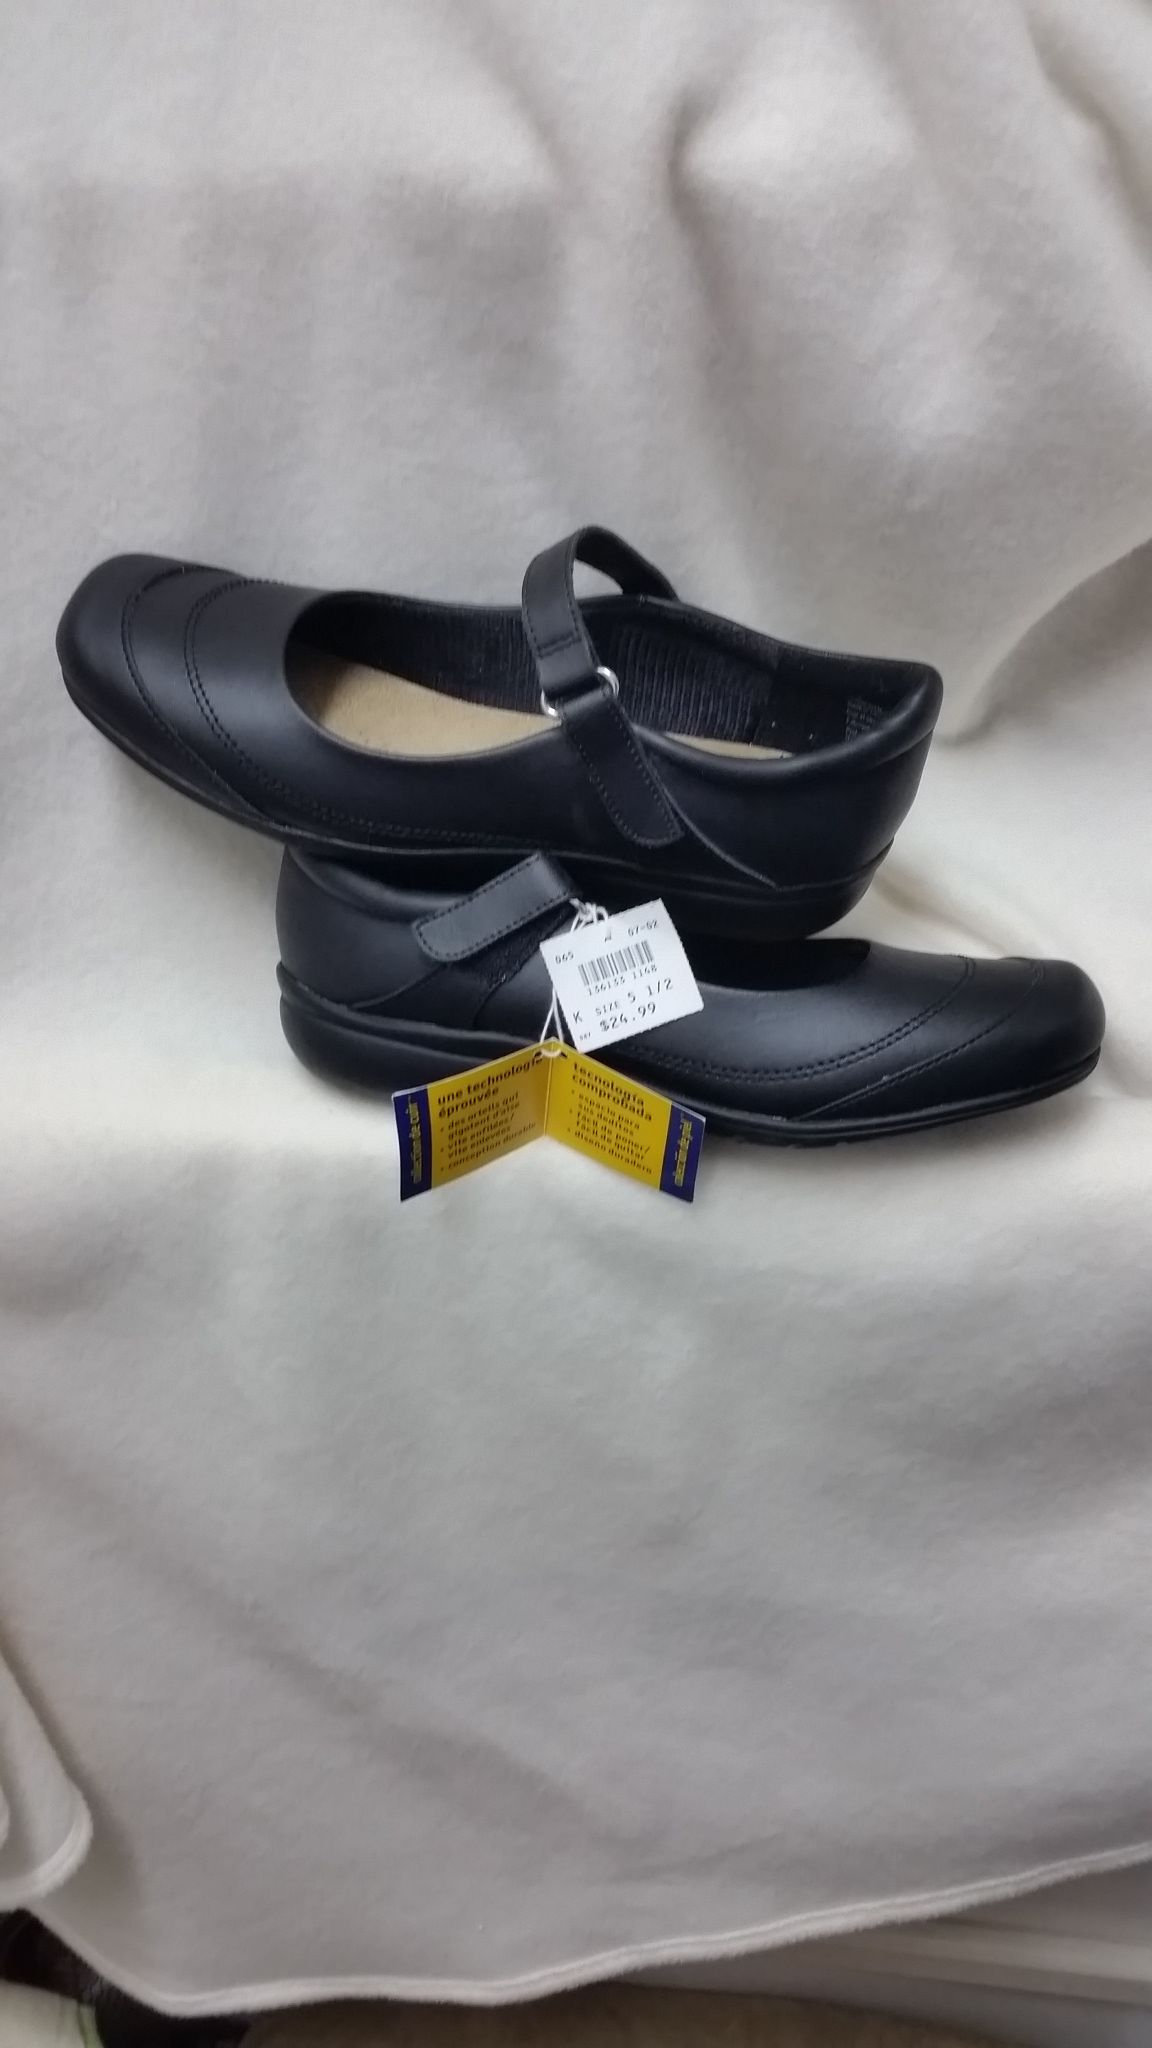 Mary Jane Shoes Kid's Size 5 1/2